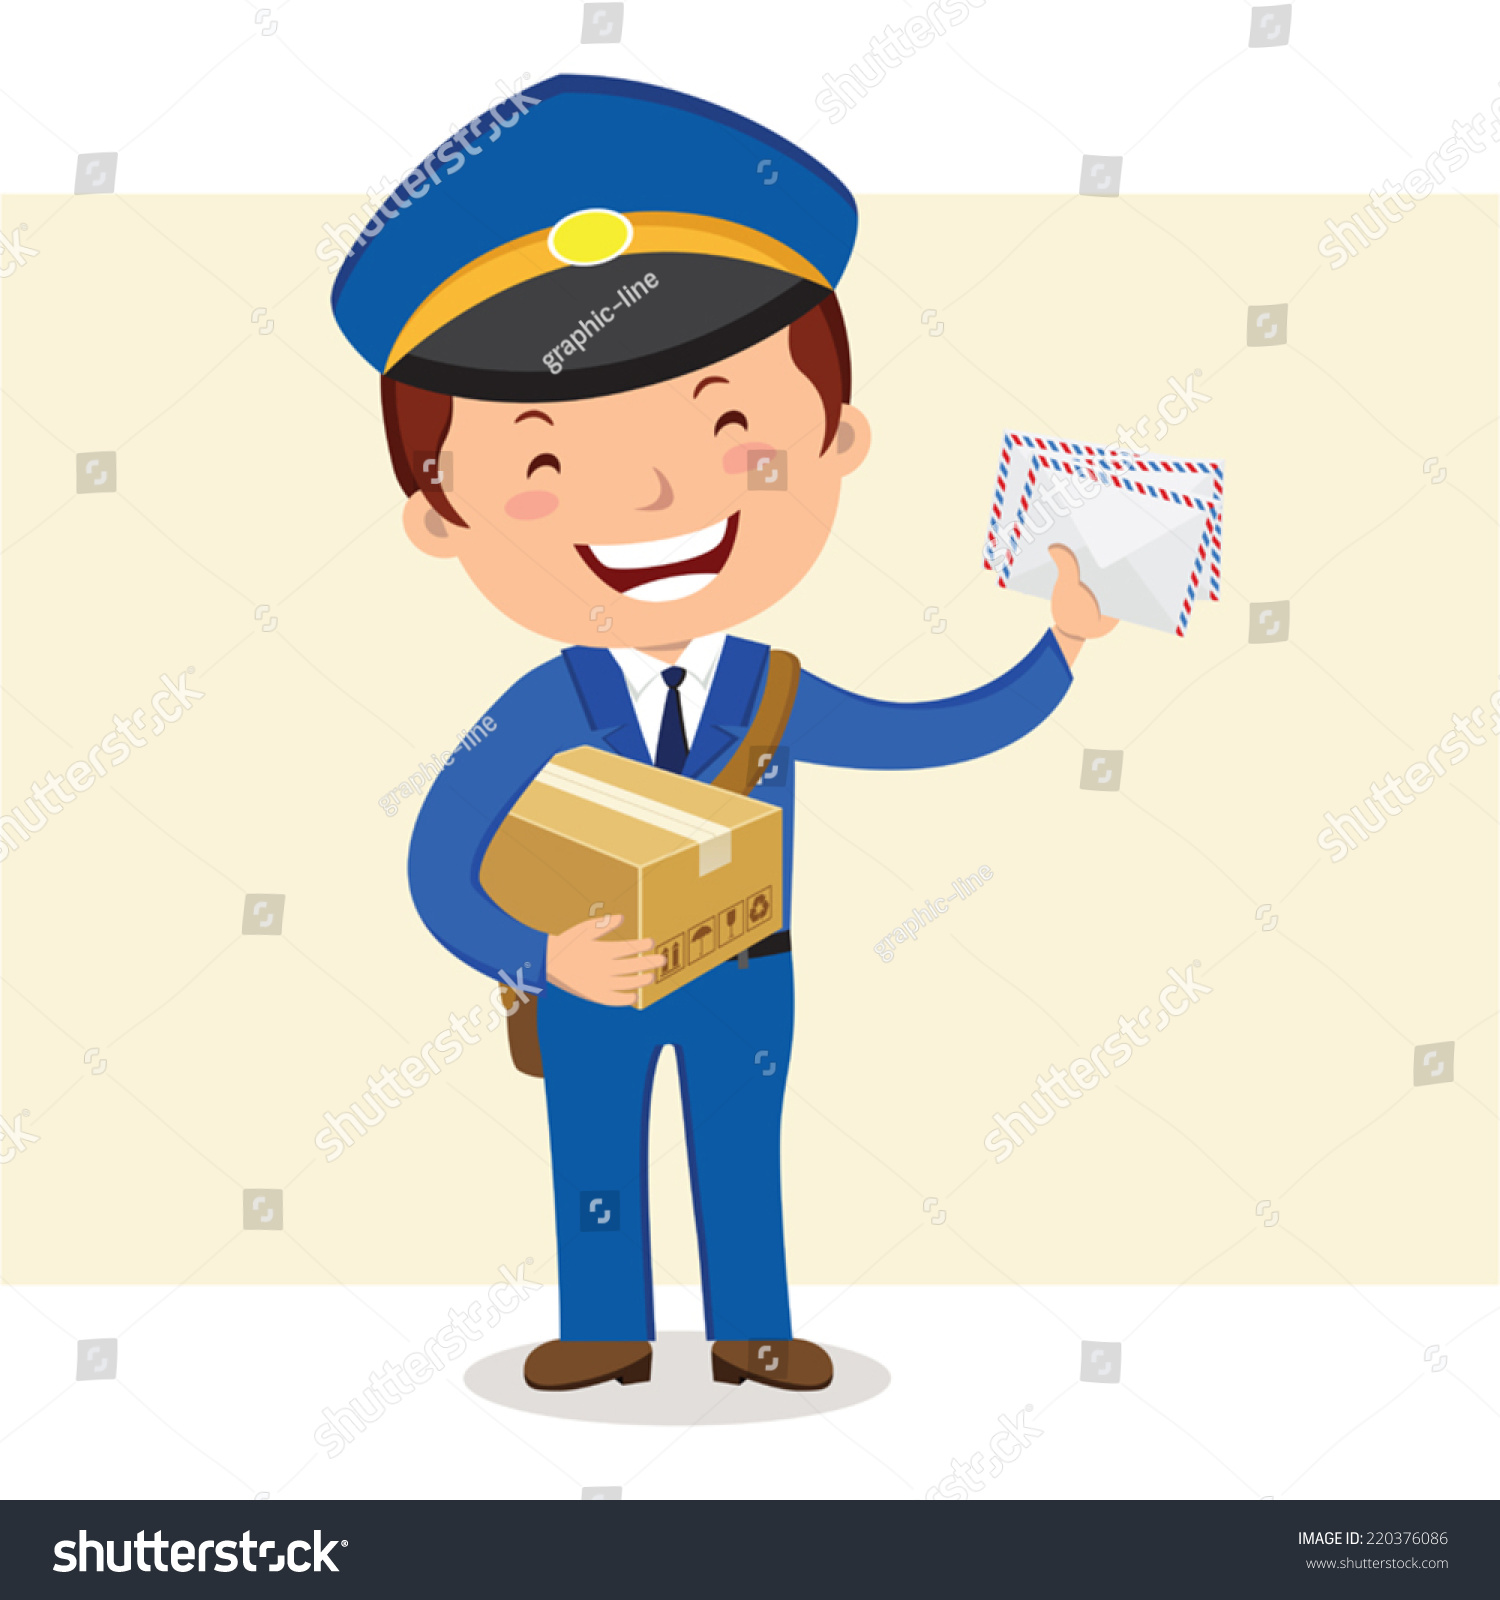 Cheerful Postman Friendly Postman Blue Uniform Stock ...